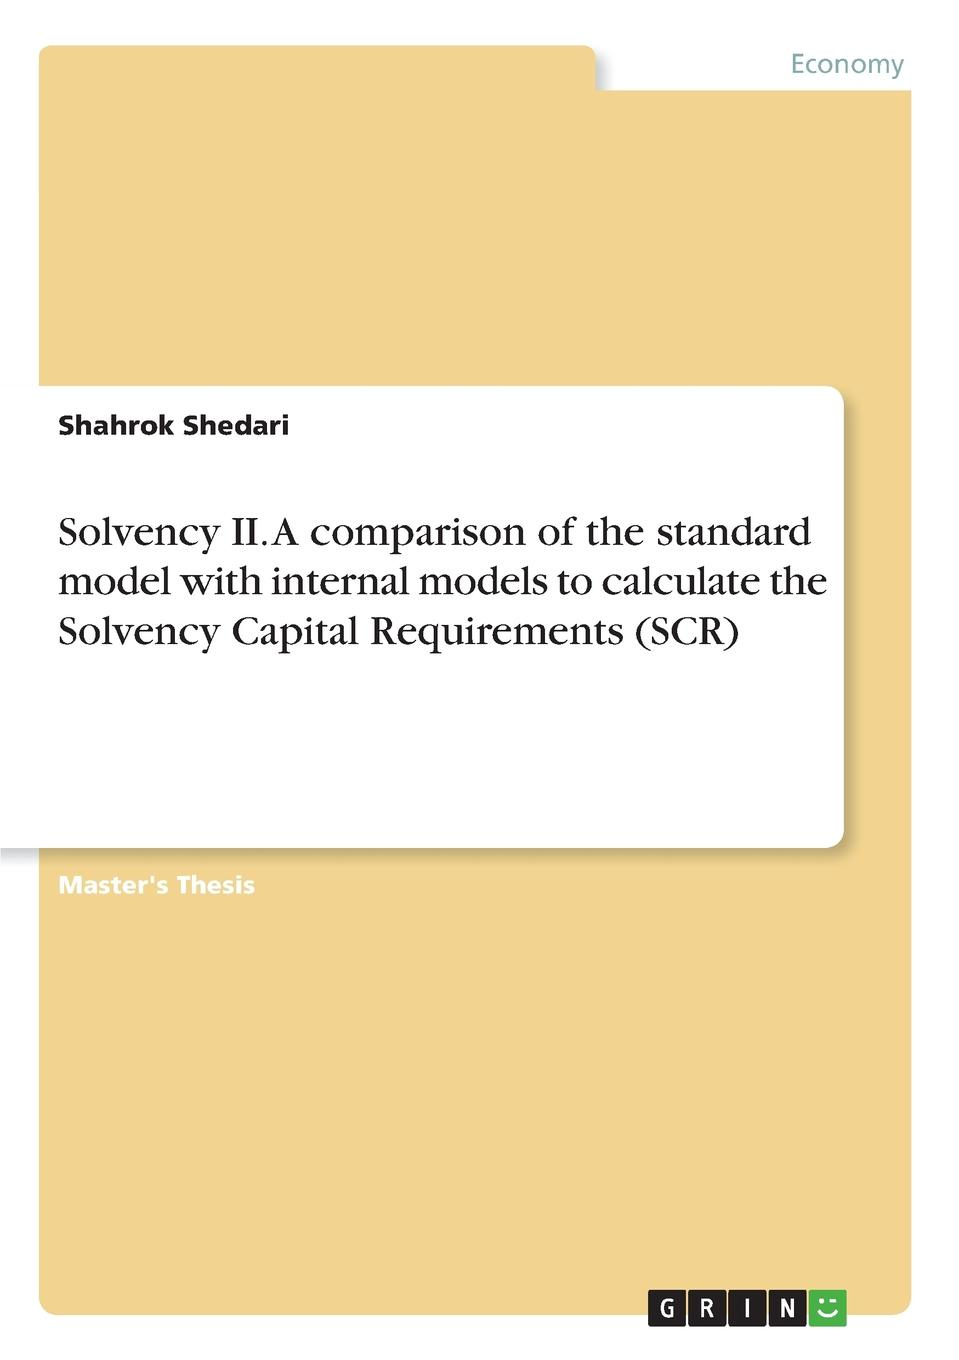 Shahrok Shedari Solvency II. A comparison of the standard model with internal models to calculate the Solvency Capital Requirements (SCR) david buckham executive s guide to solvency ii